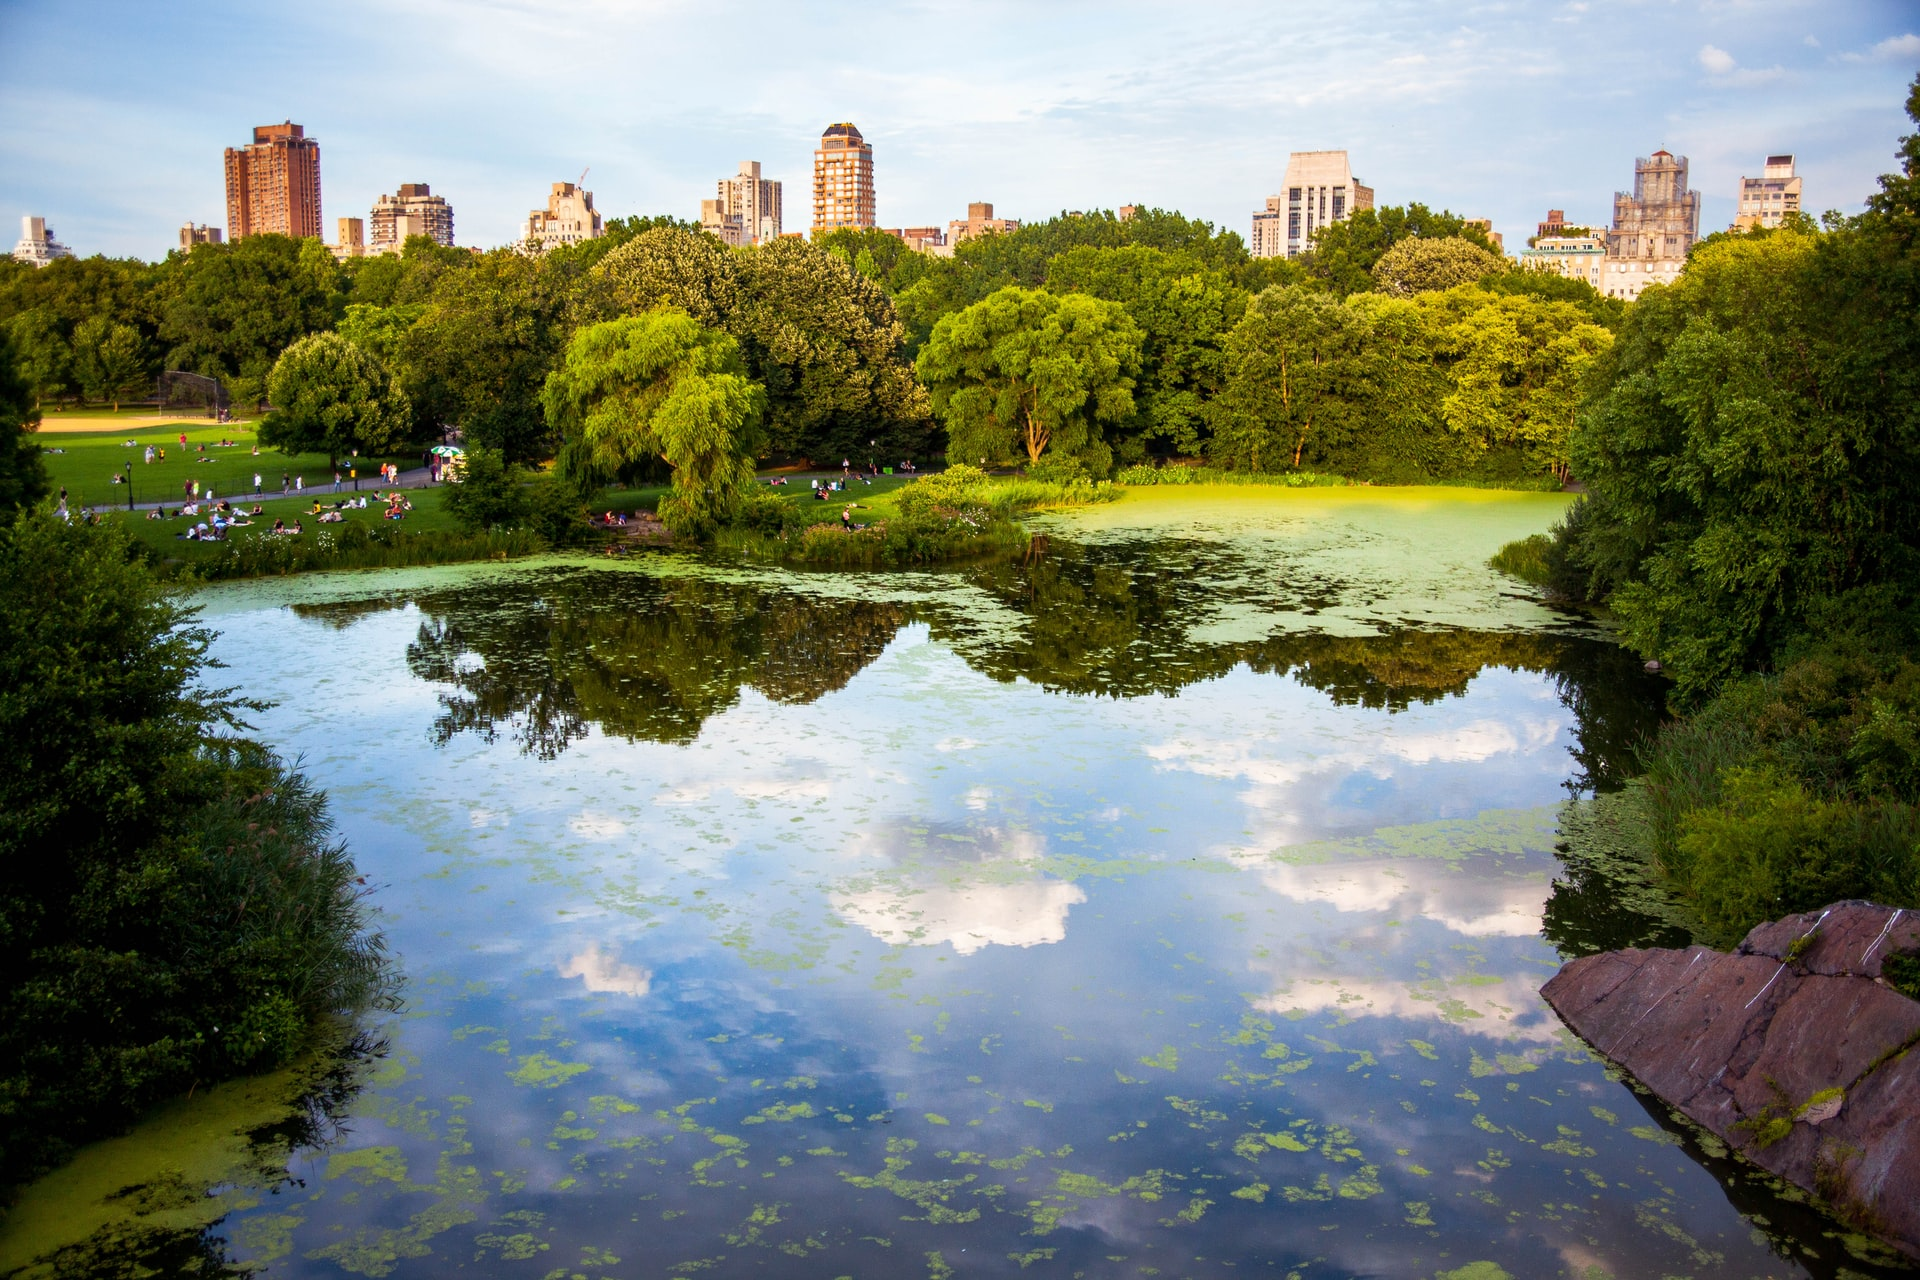 Central Park with lake in foreground and skyline in background